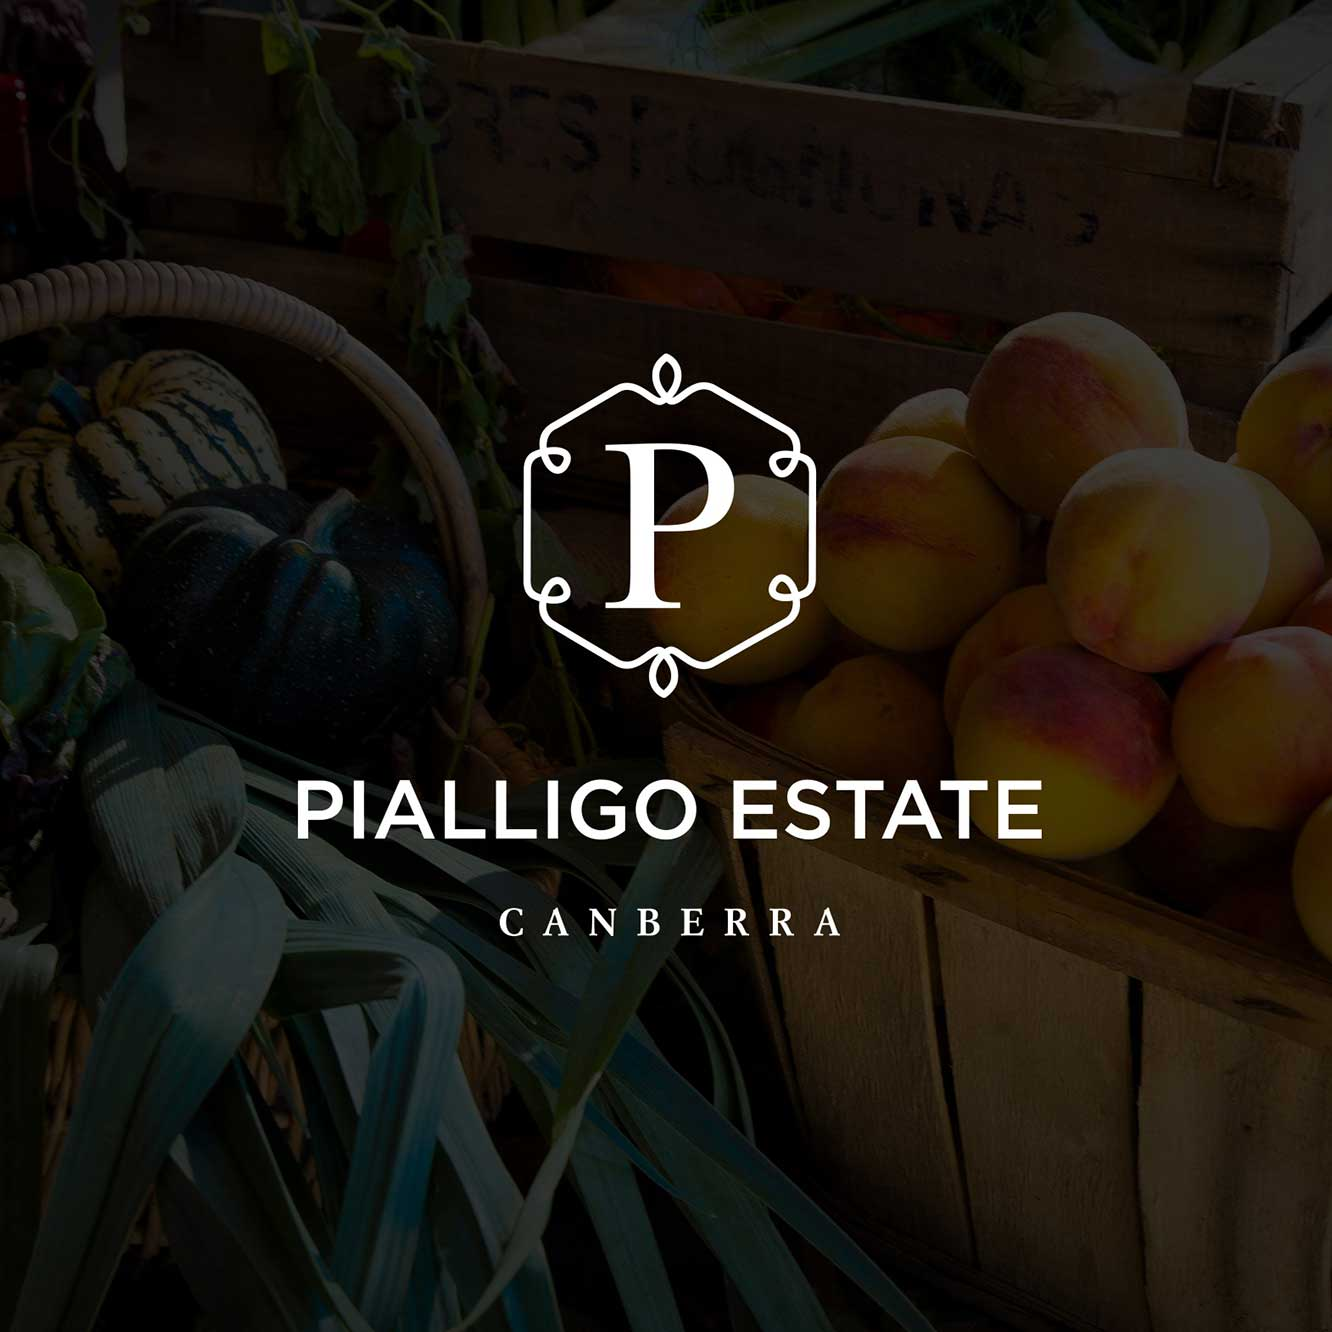 Pialligo Estate